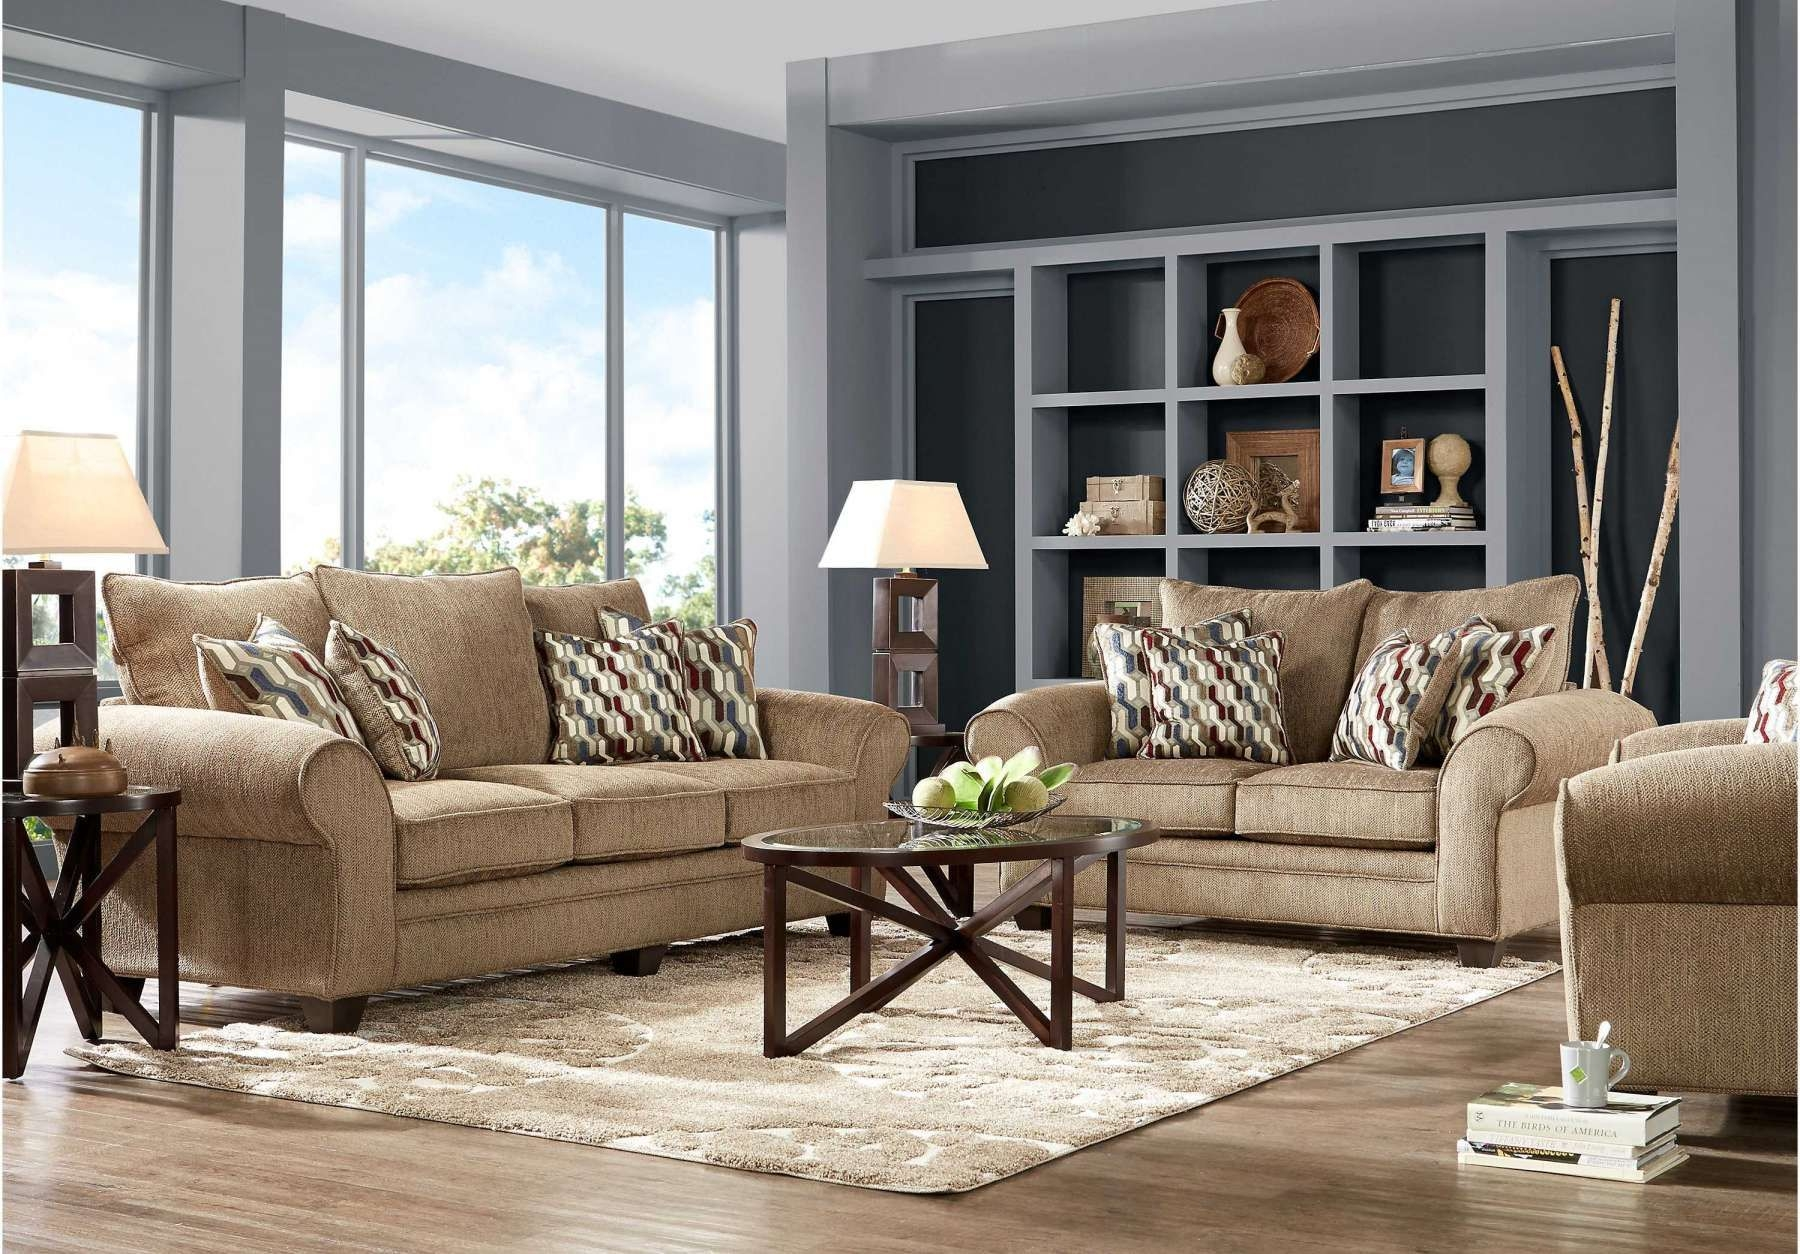 Living Room Youll Love Furniture Wayfair Designs And Decoration Patio Store Locations In Locator